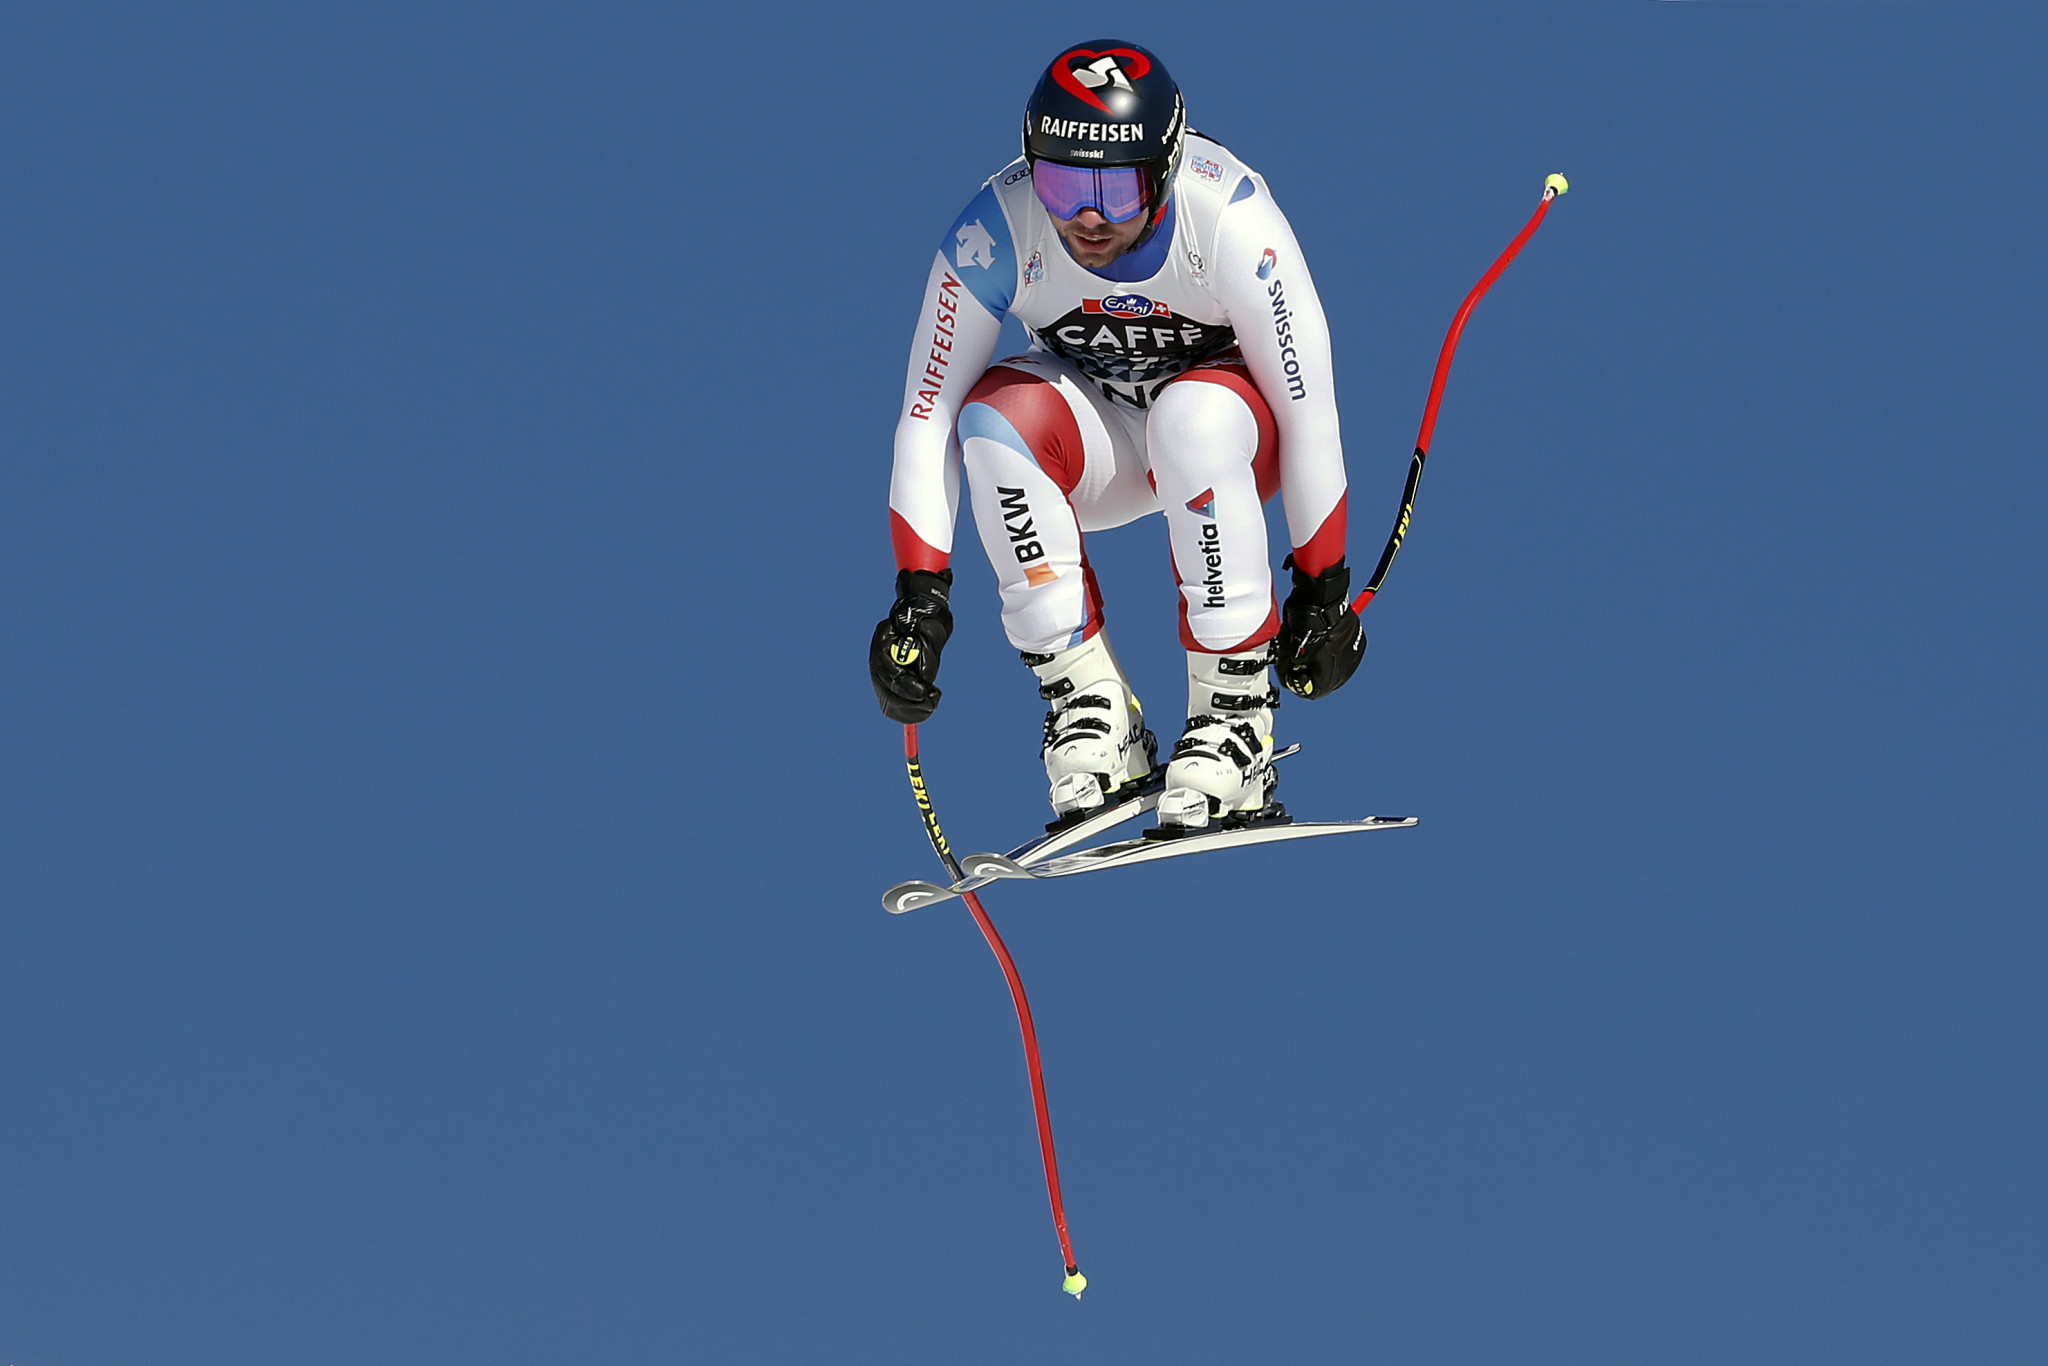 Mixed fortunes for defending champions before FIS World Cup in Kitzbühel